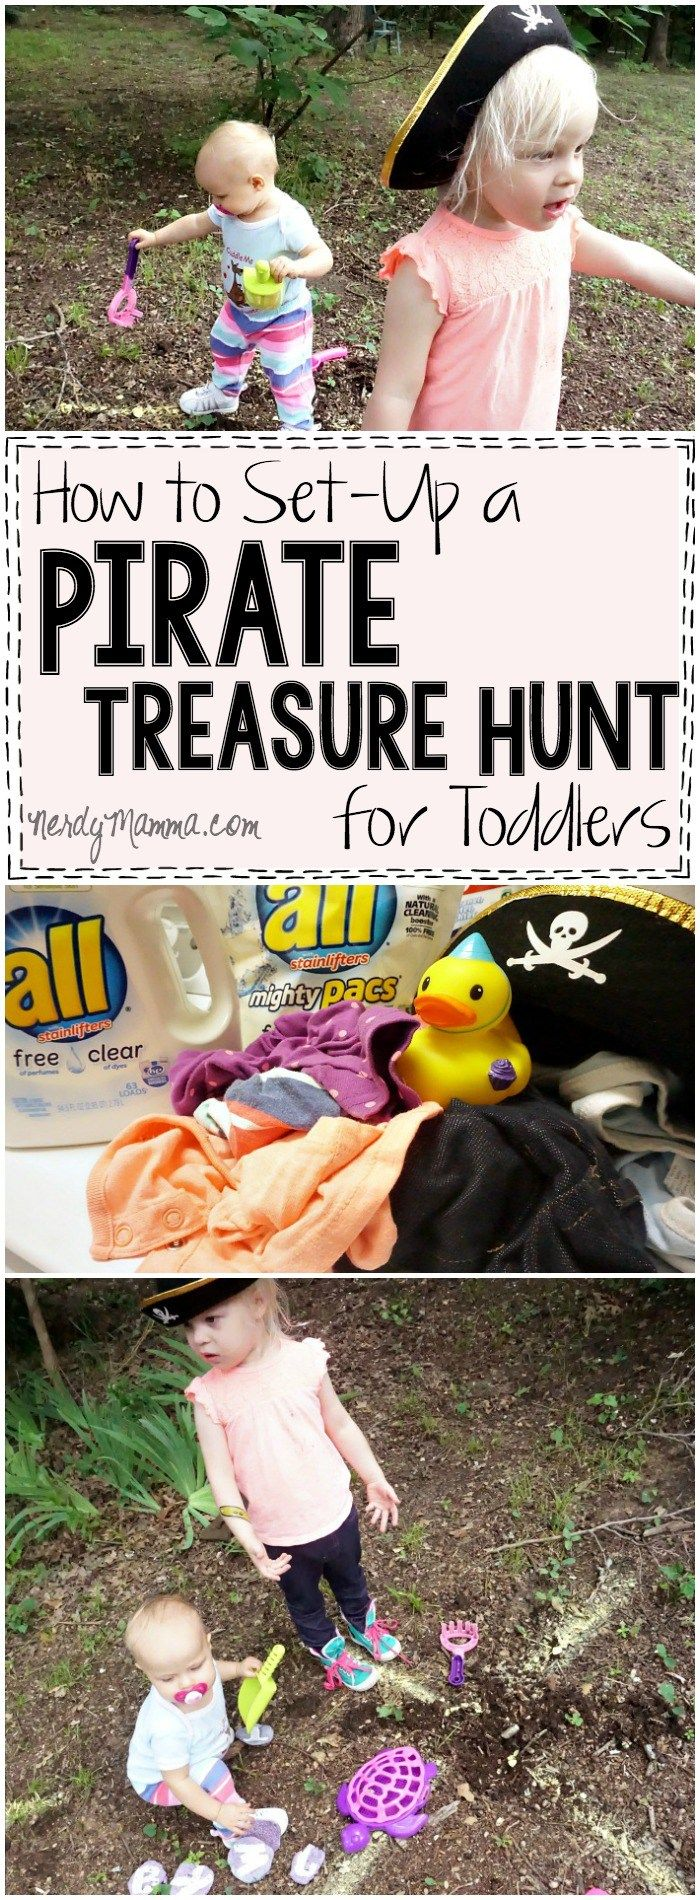 I love this easy pirate treasure hunt activity for toddlers! How simple--and cute! AD #FreeToBe